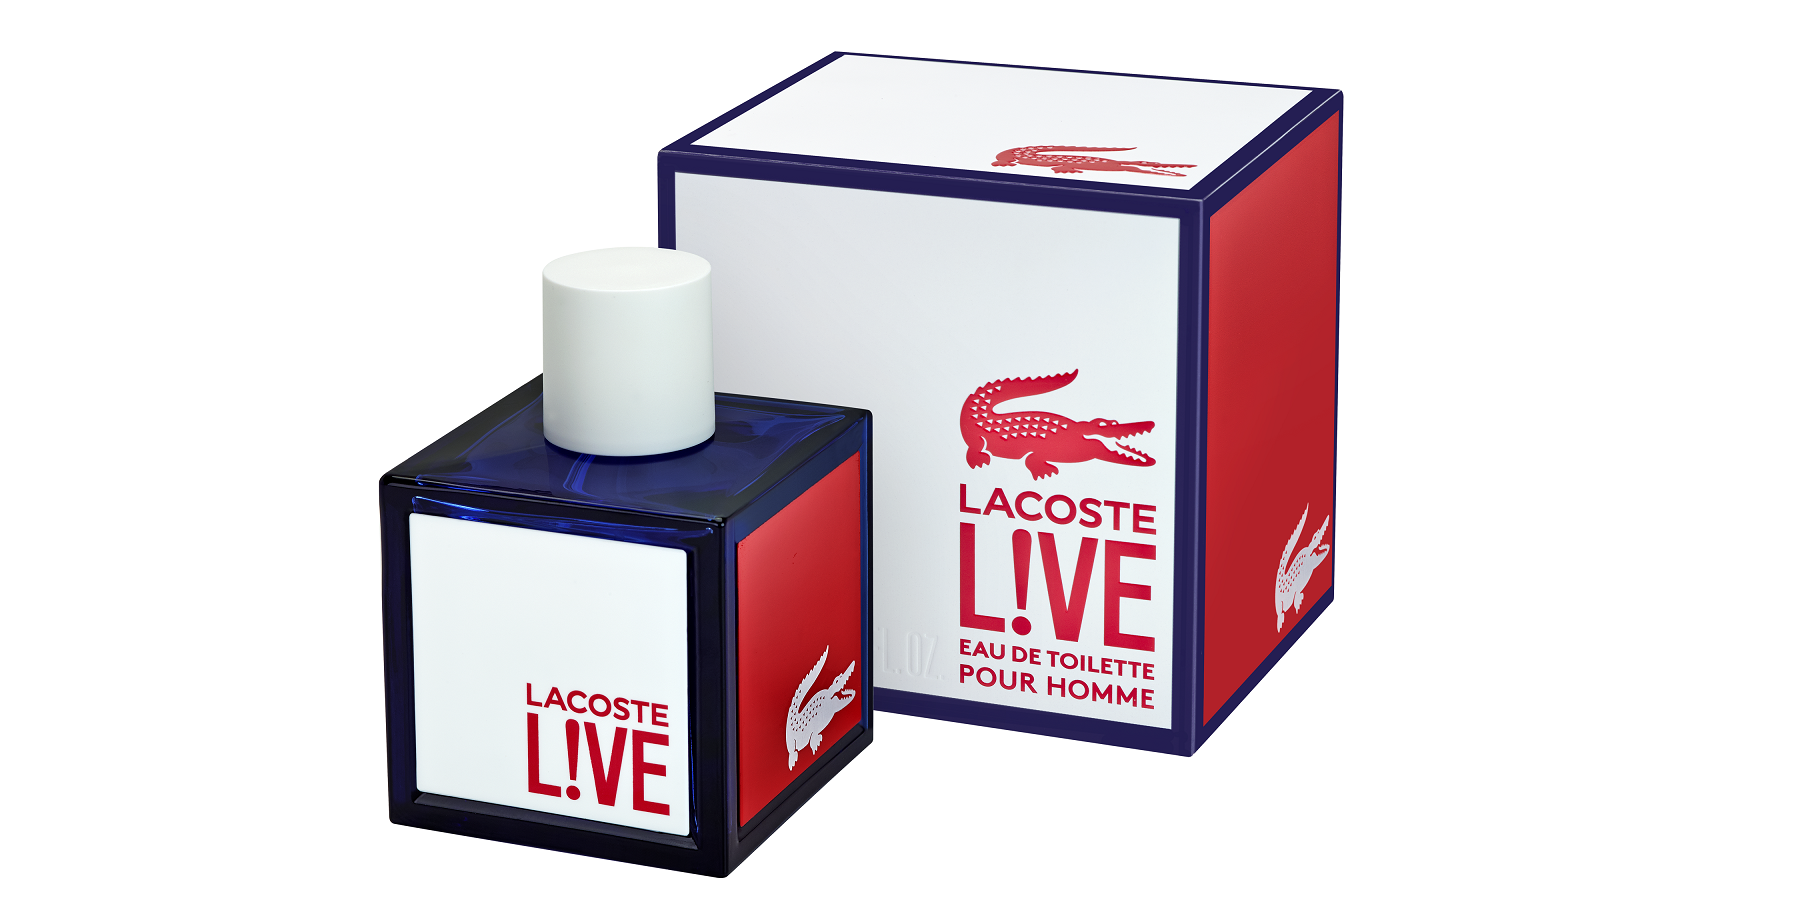 Lacoste Live aftershave review